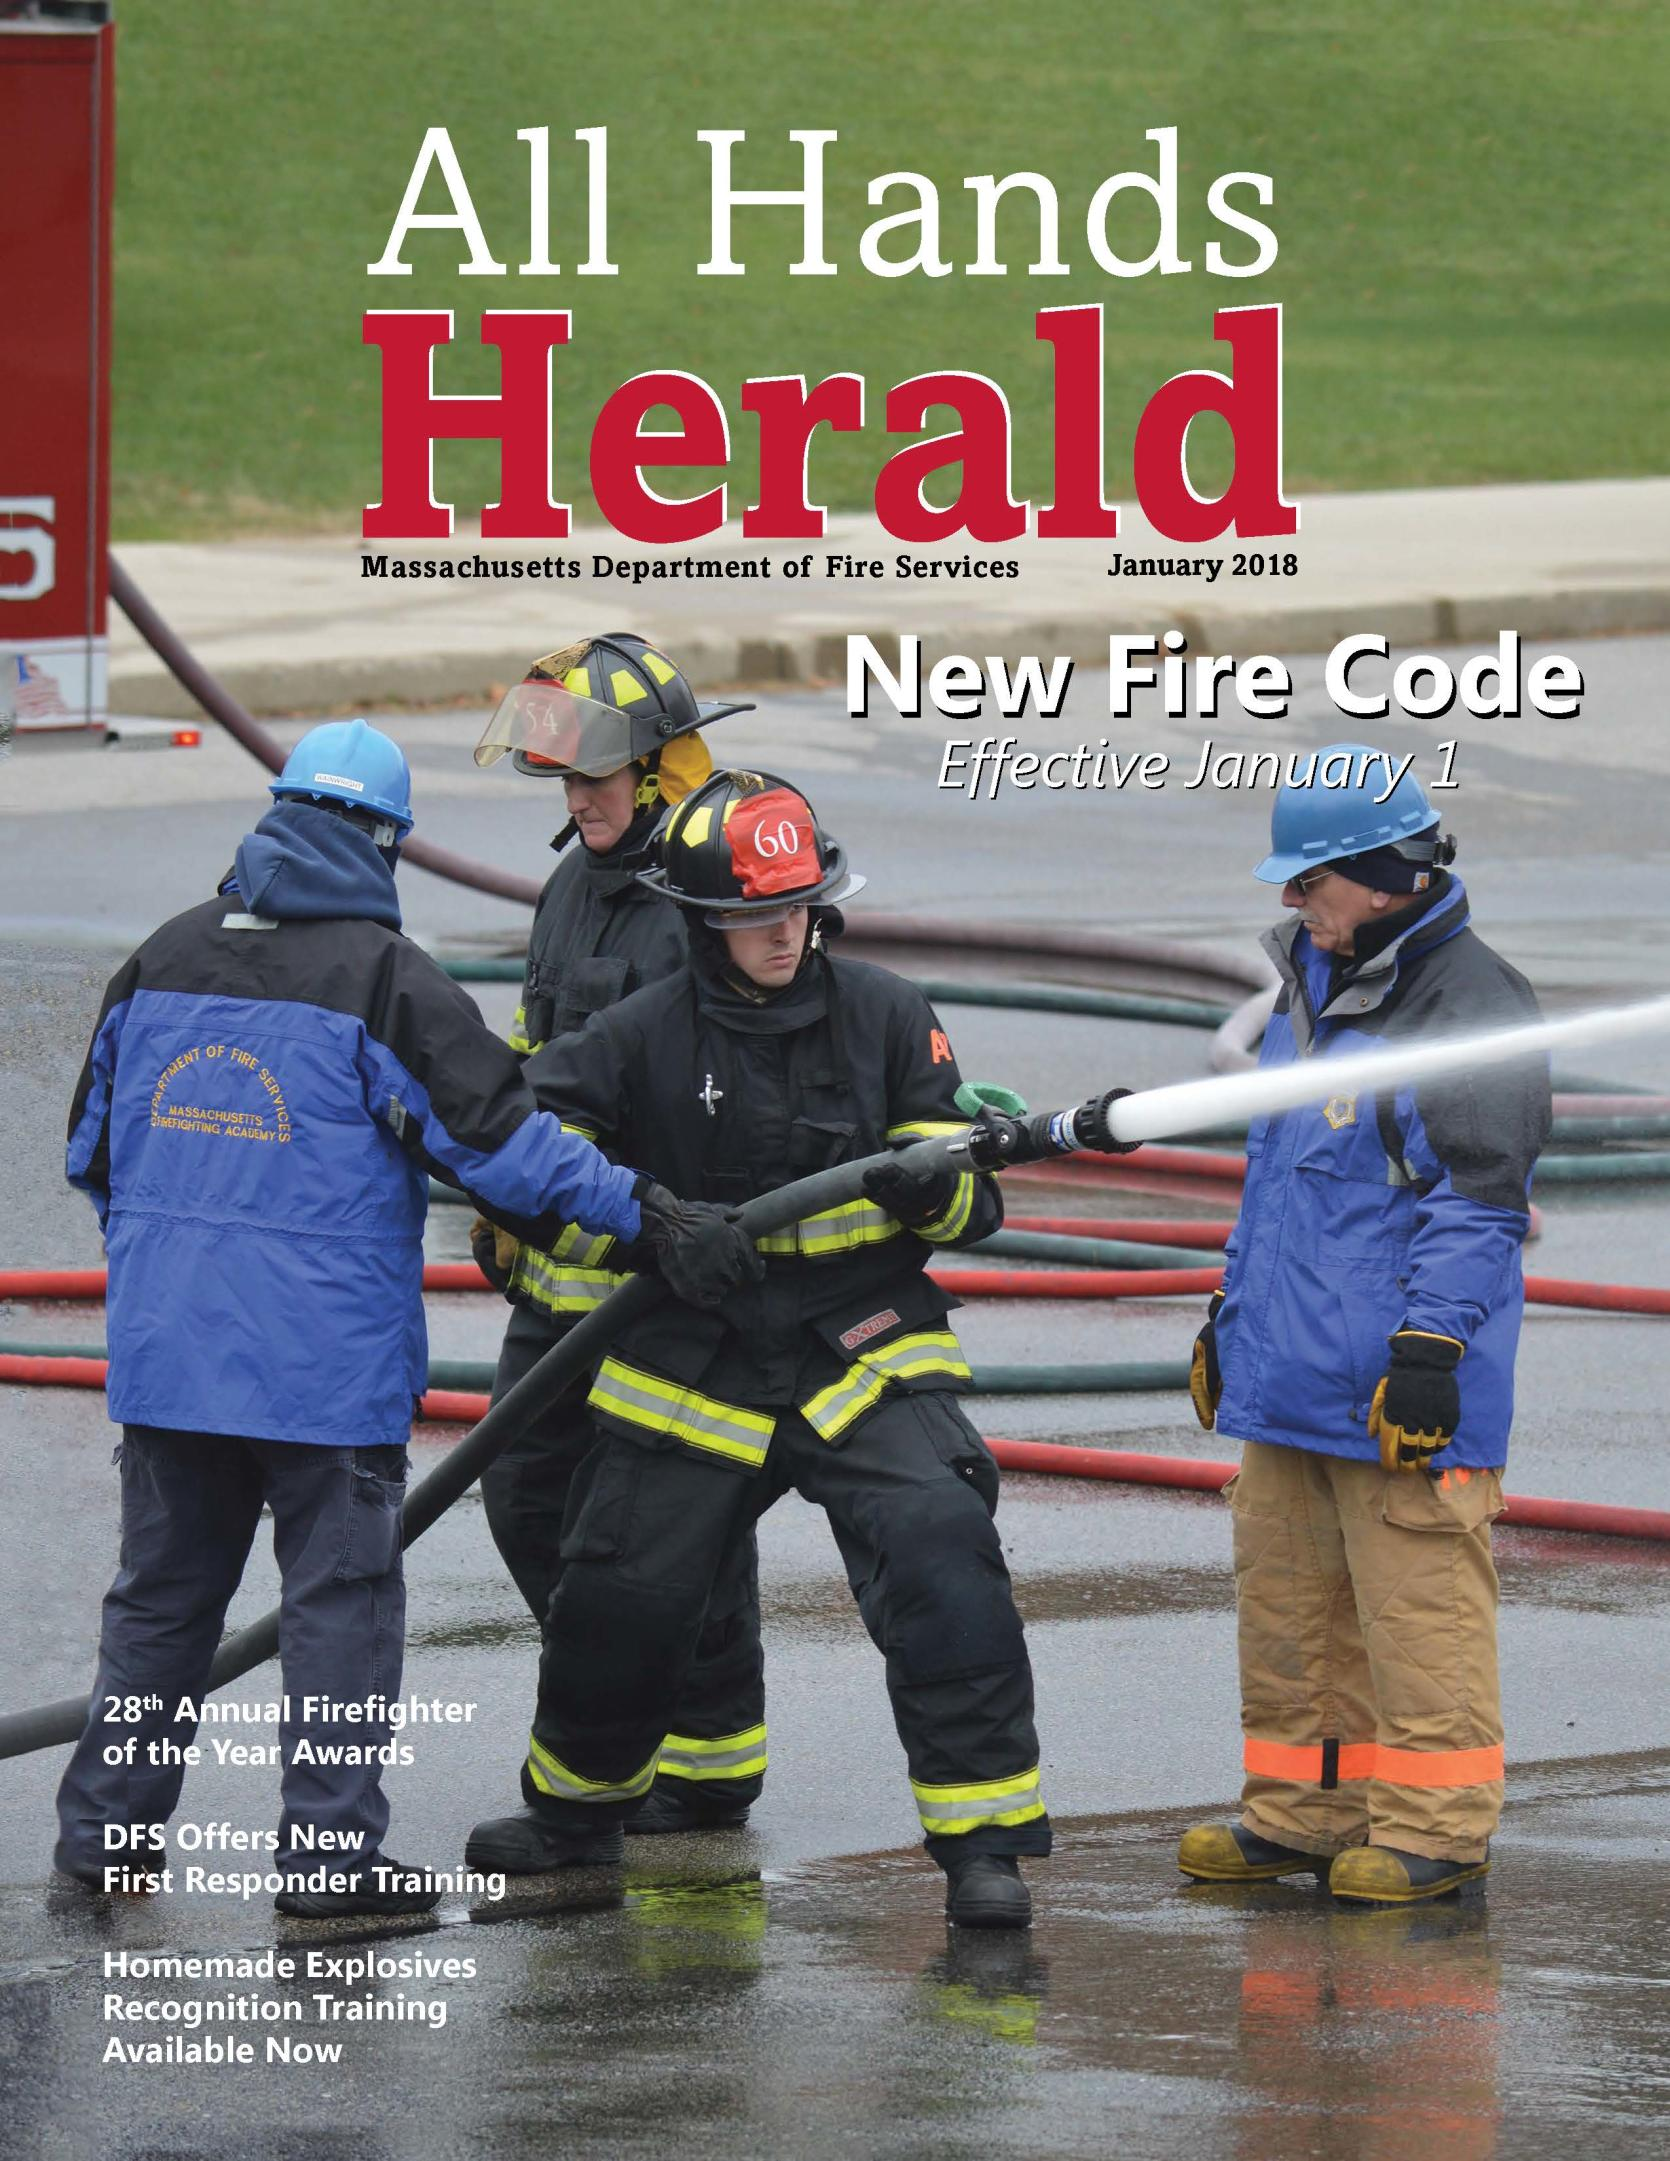 Cover All Hands Herald Jan 2018 firefighters using hoses